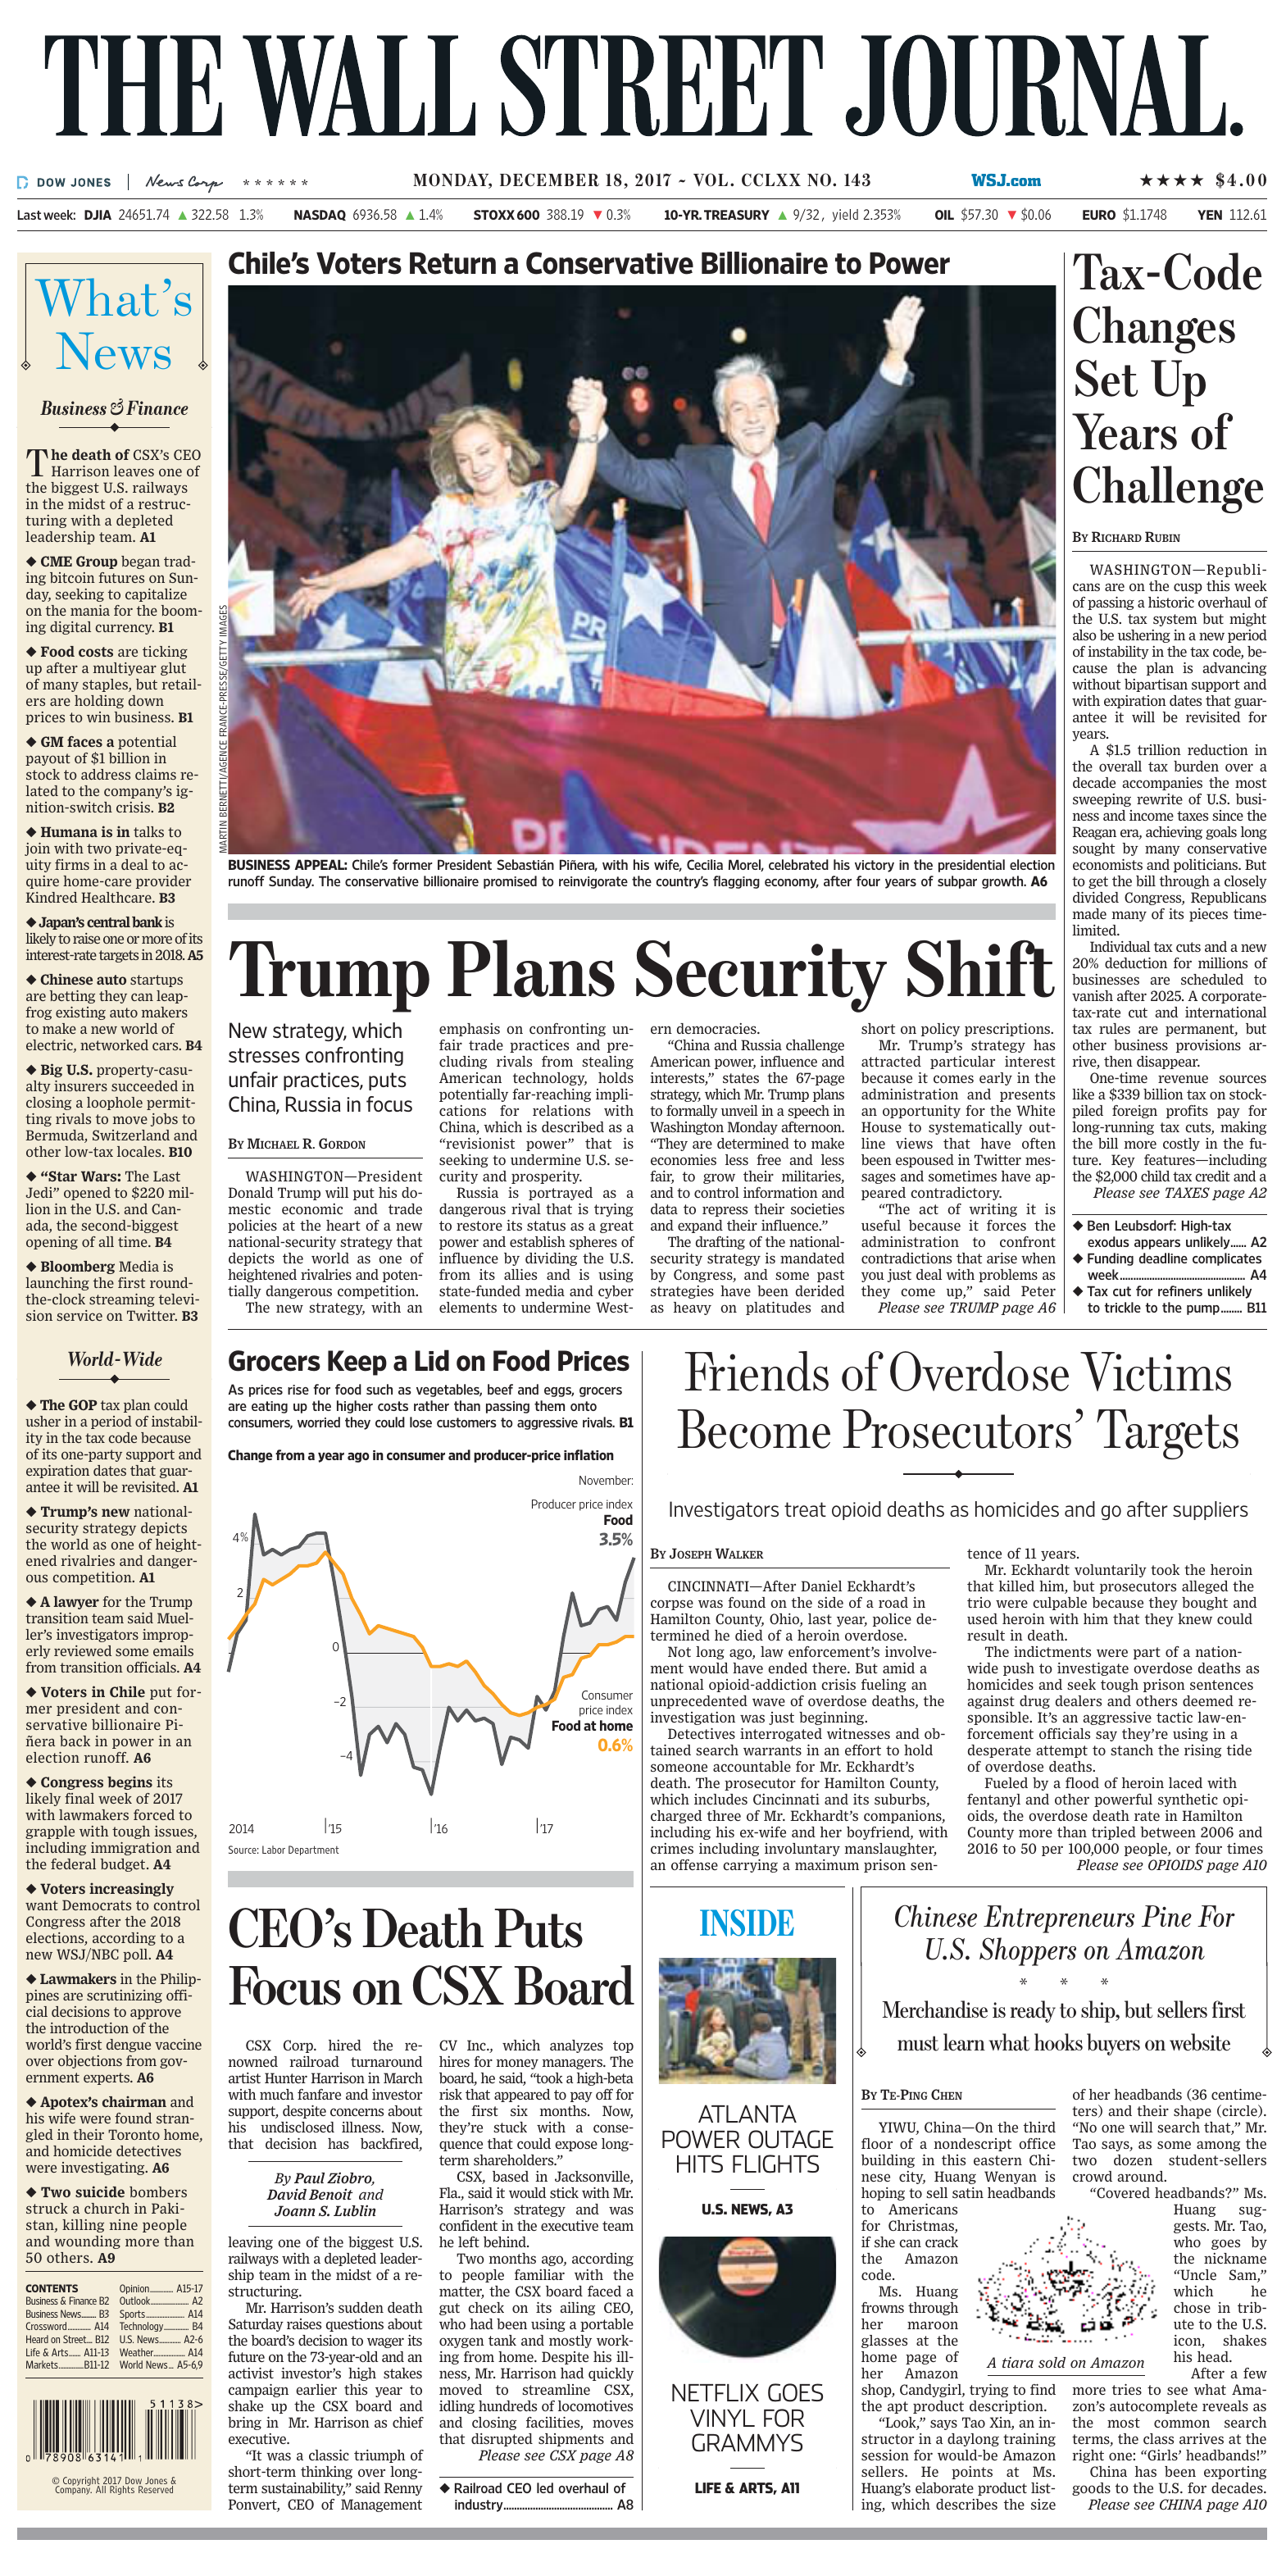 ed29543ad The Wall Street Journal - 18 12 2017